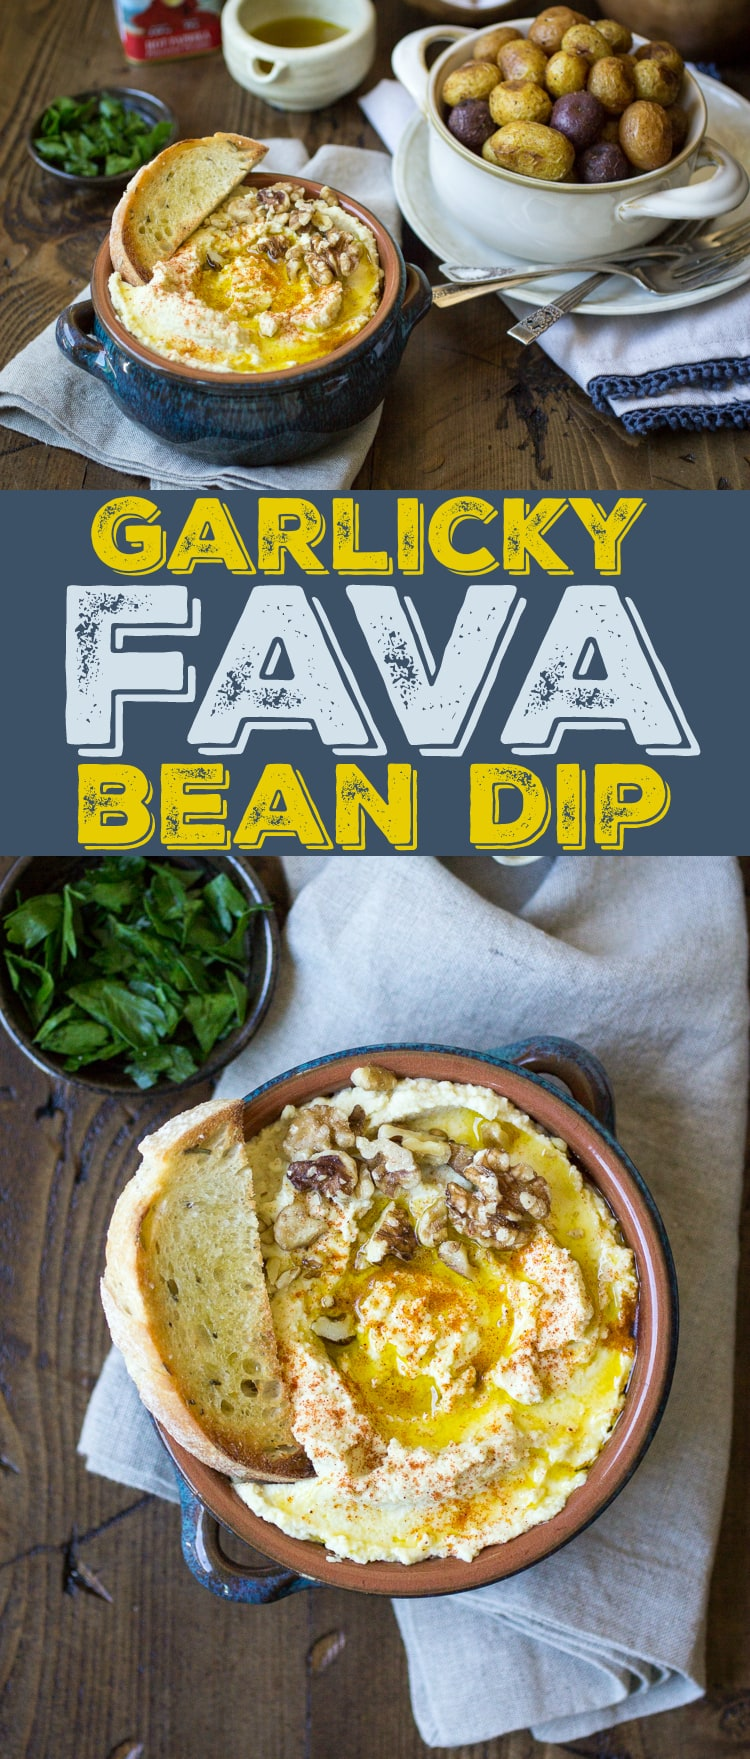 This easy Fava Bean Dip is creamy and full of rich flavor! Perfect for any party, or spread onto sandwiches or pita bread.